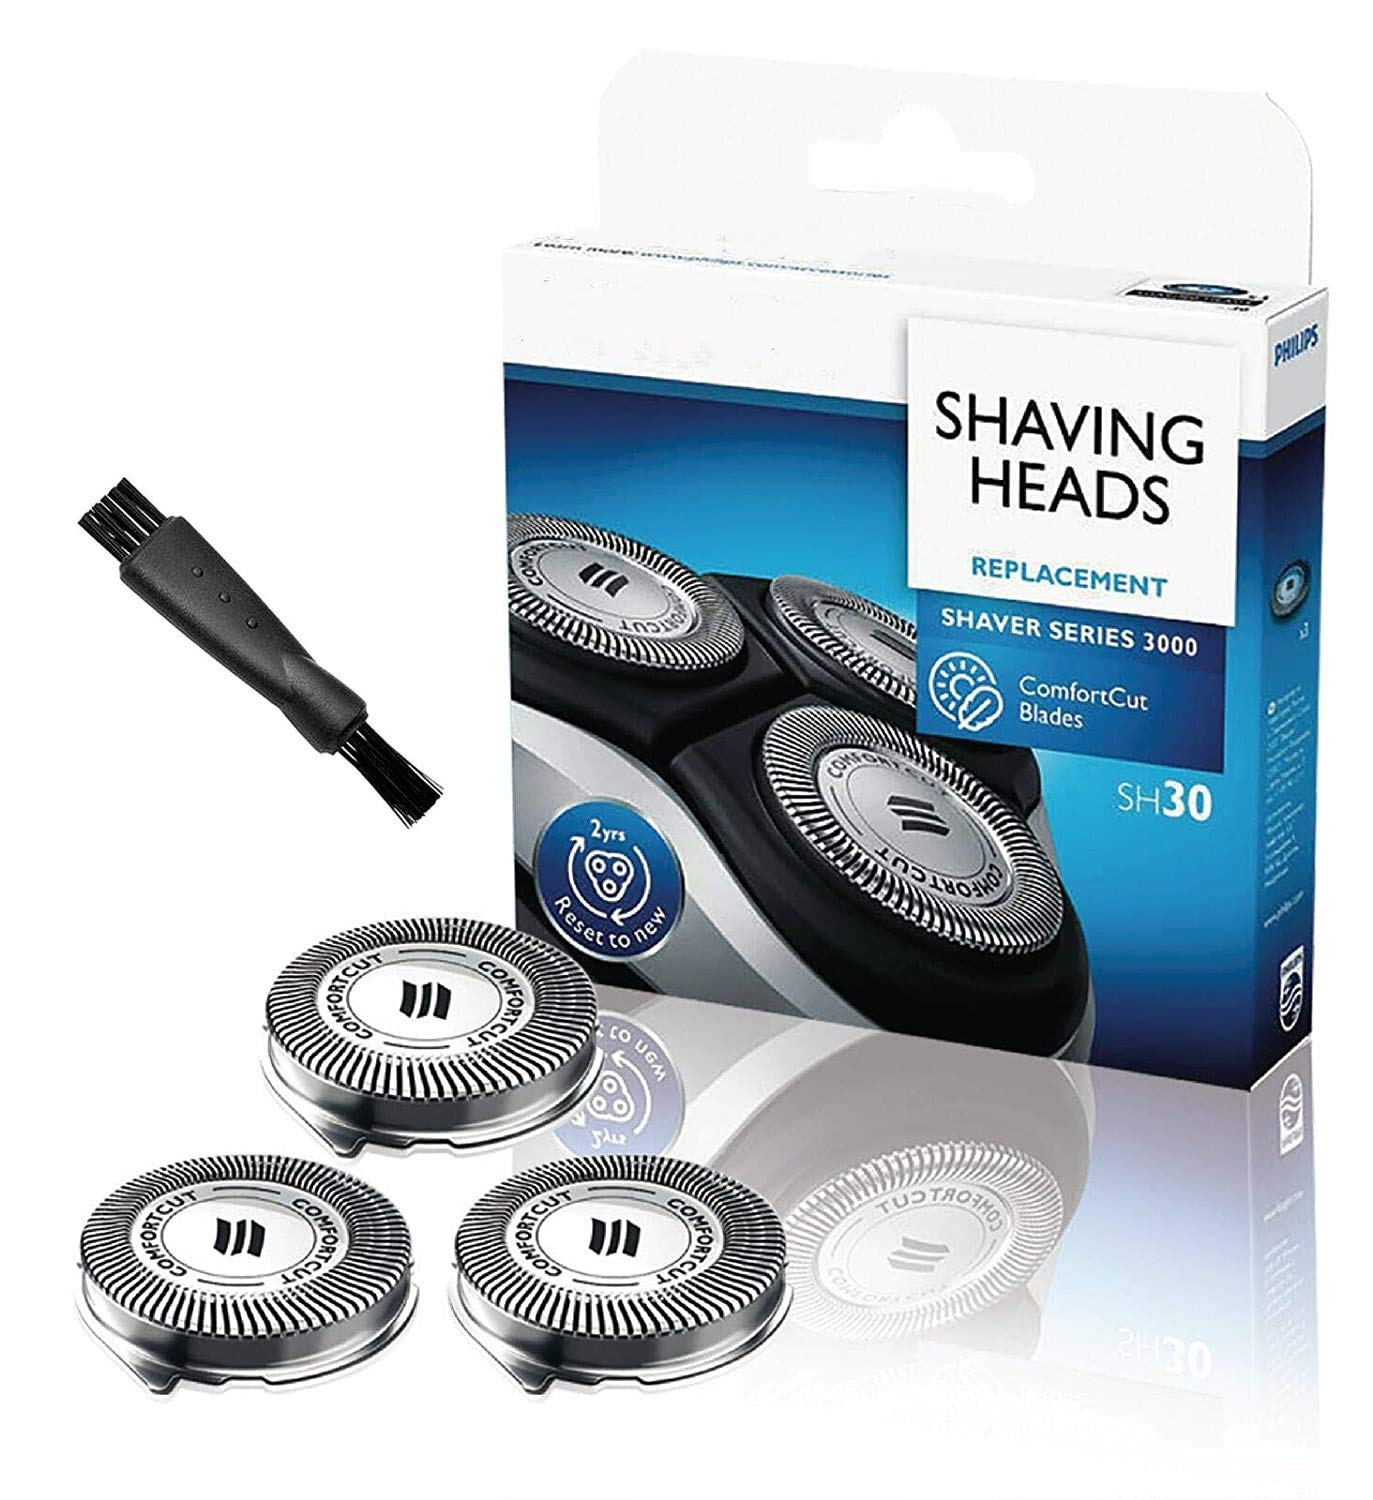 SH30 Replacement Heads for Philips Norelco Series 1000, 2000, 3000 Shavers,Suitable for a Variety of Razor Models to Replace the Head(new)3 pack(Amazon Selection)